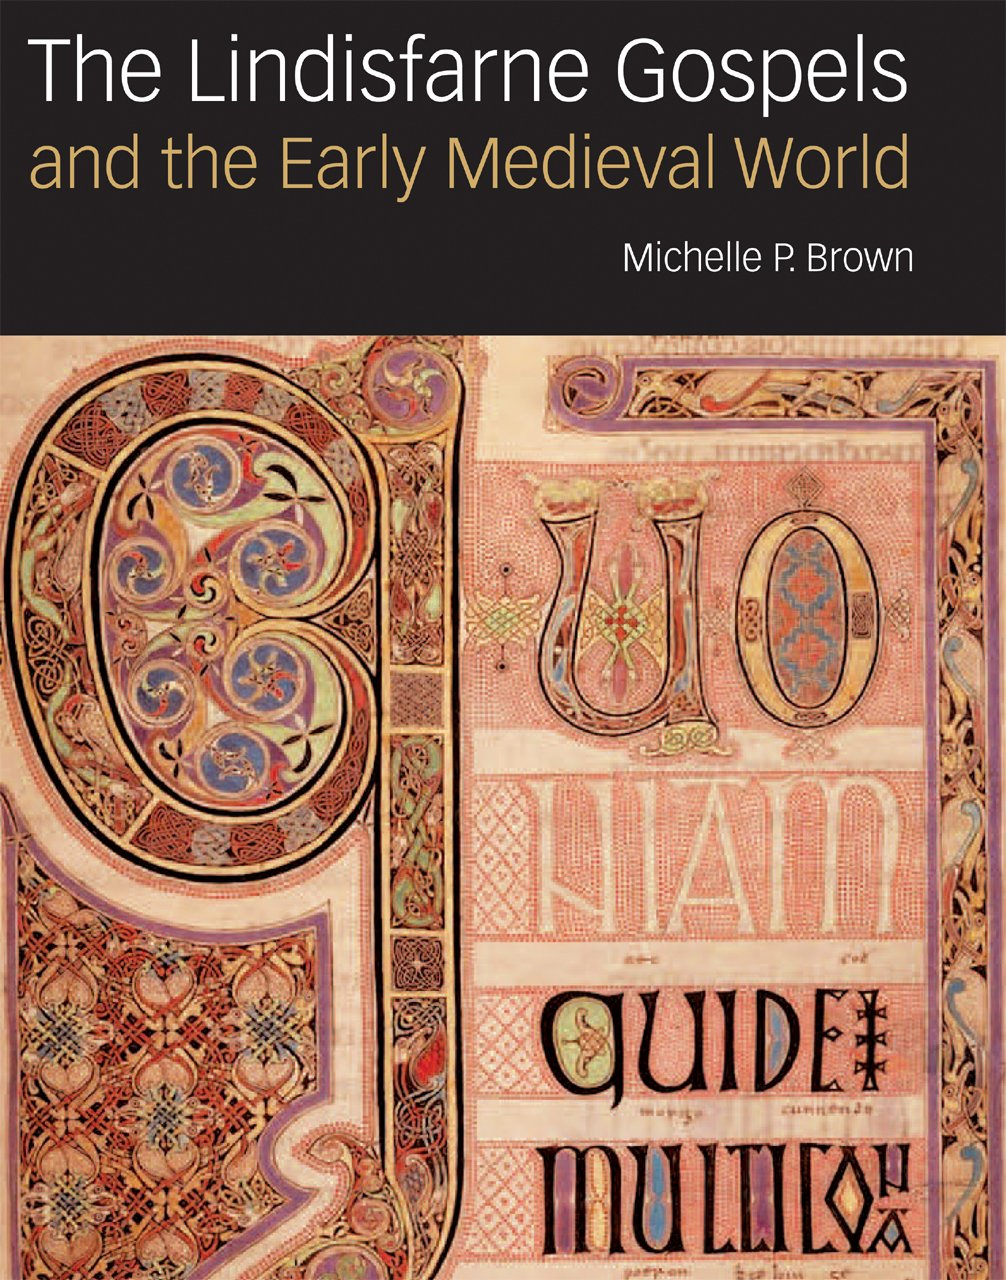 The Lindisfarne Gospels and the Early Medieval World: Michelle P. Brown:  9780712358019: Amazon.com: Books